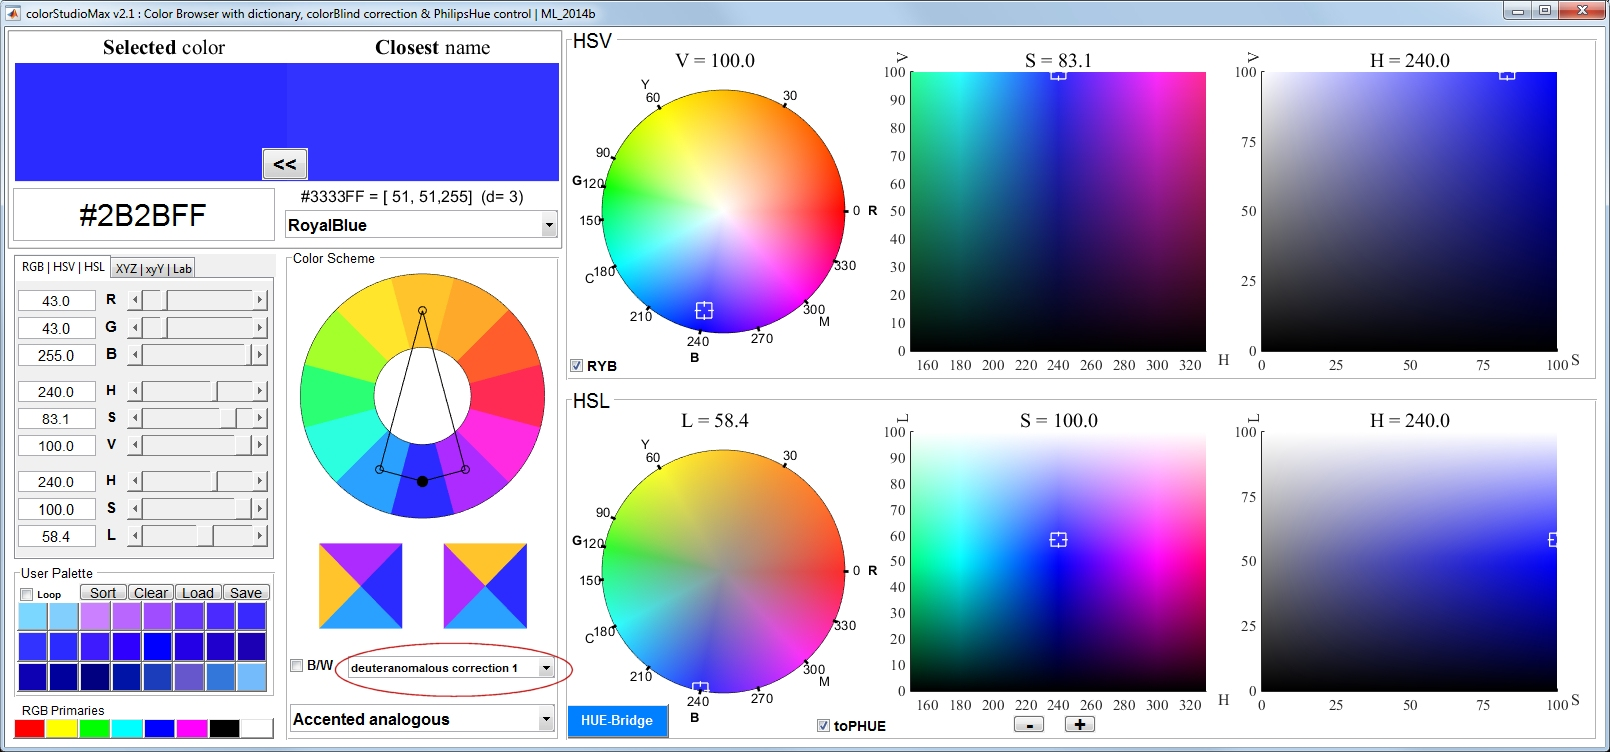 colorStudioMax : Color Browser with dictionary, colorBlind